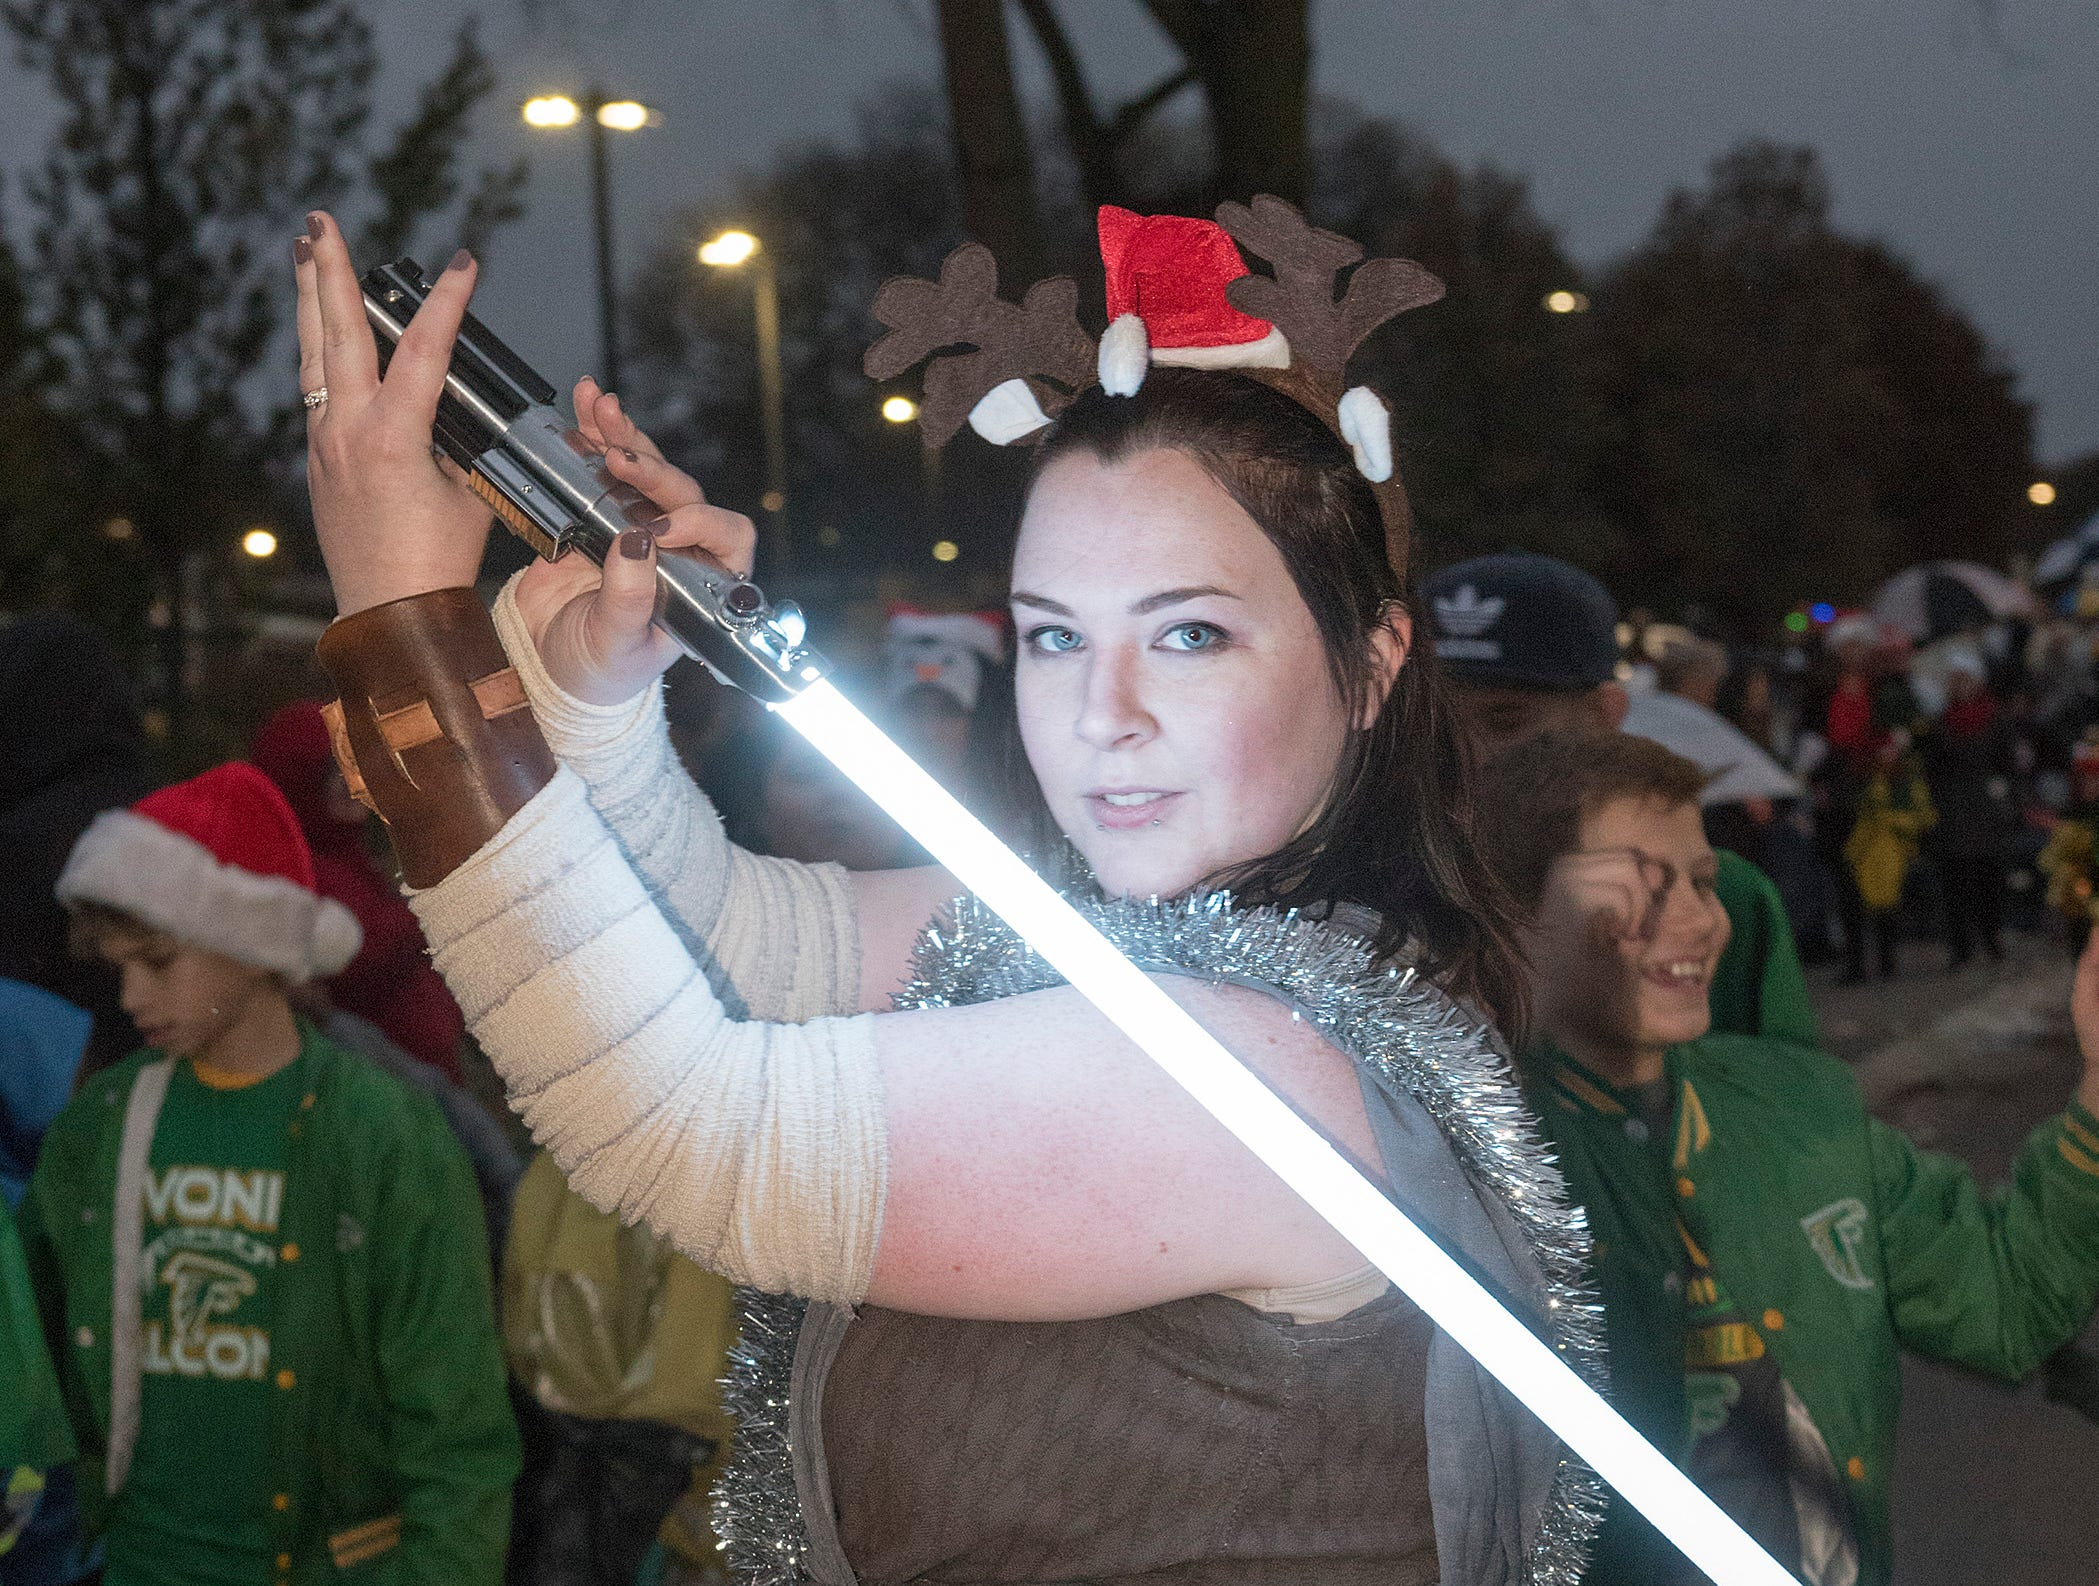 Rey, a Star Wars character, is a member of the Rebel Legion 501st and the Mandalorian Merc, marching in the parade.